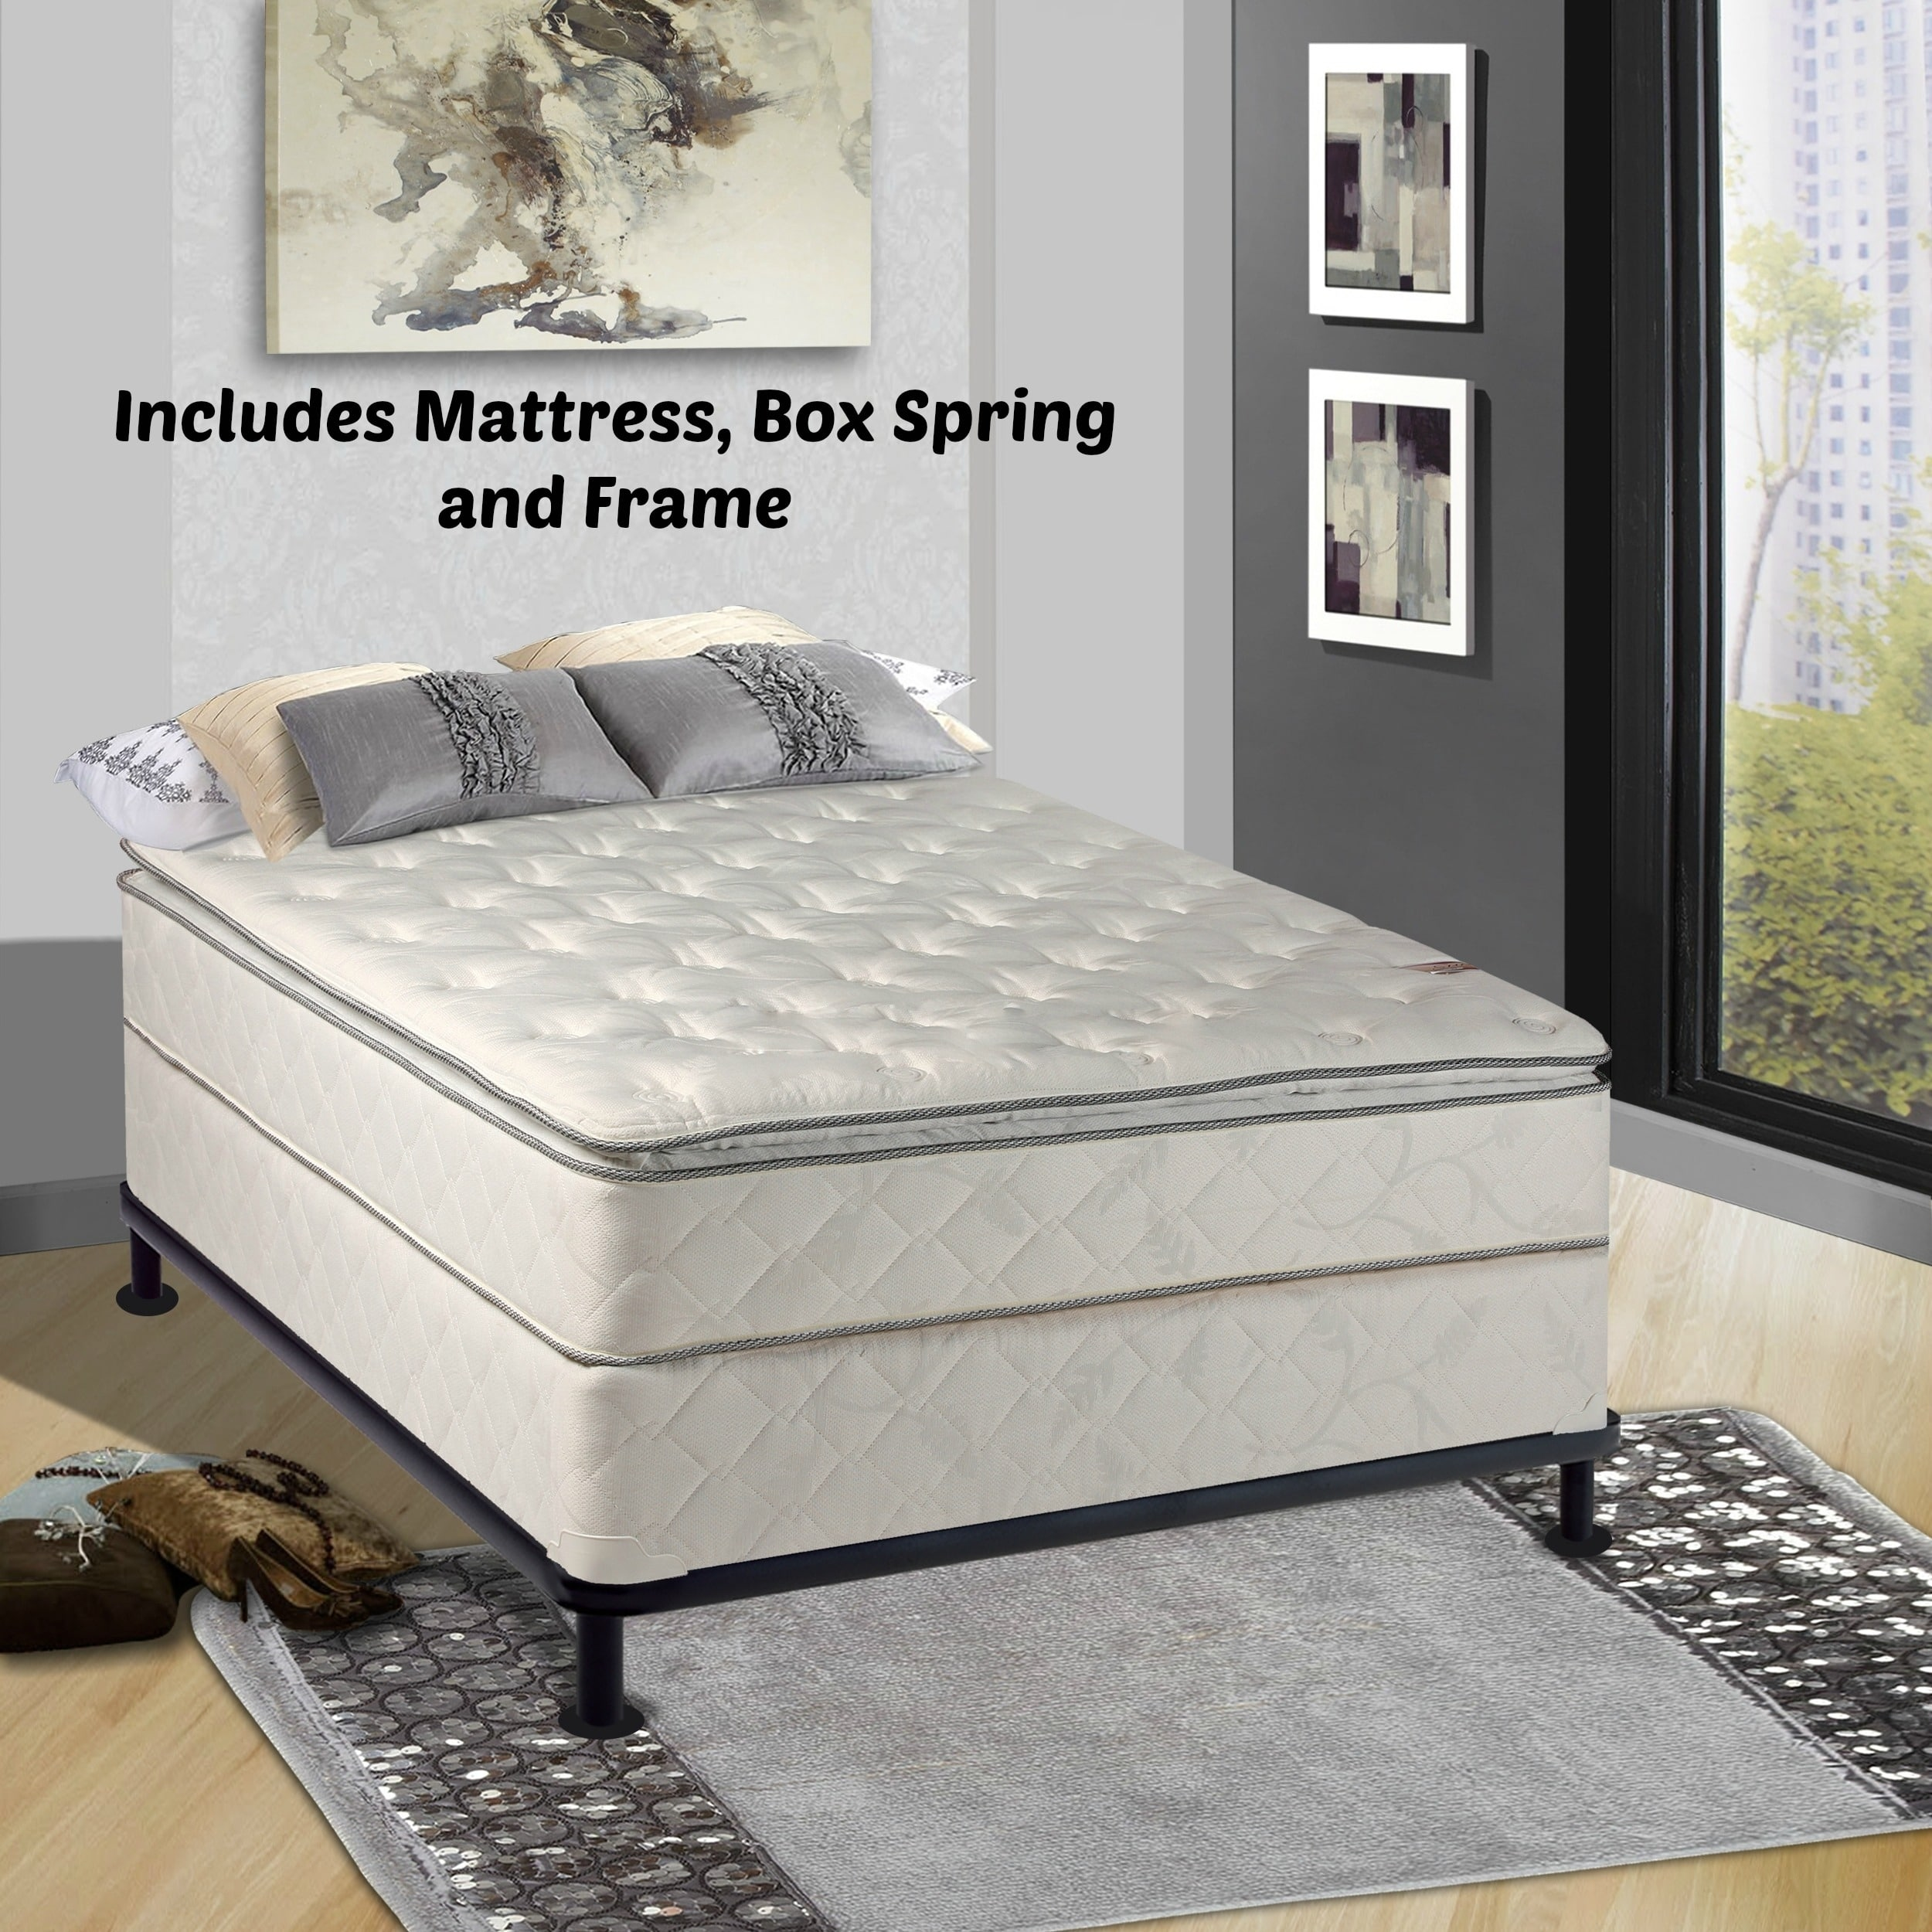 Continental Sleep , Medium Plush Pillowtop Orthopedic type Mattress and Box Spring with Frame